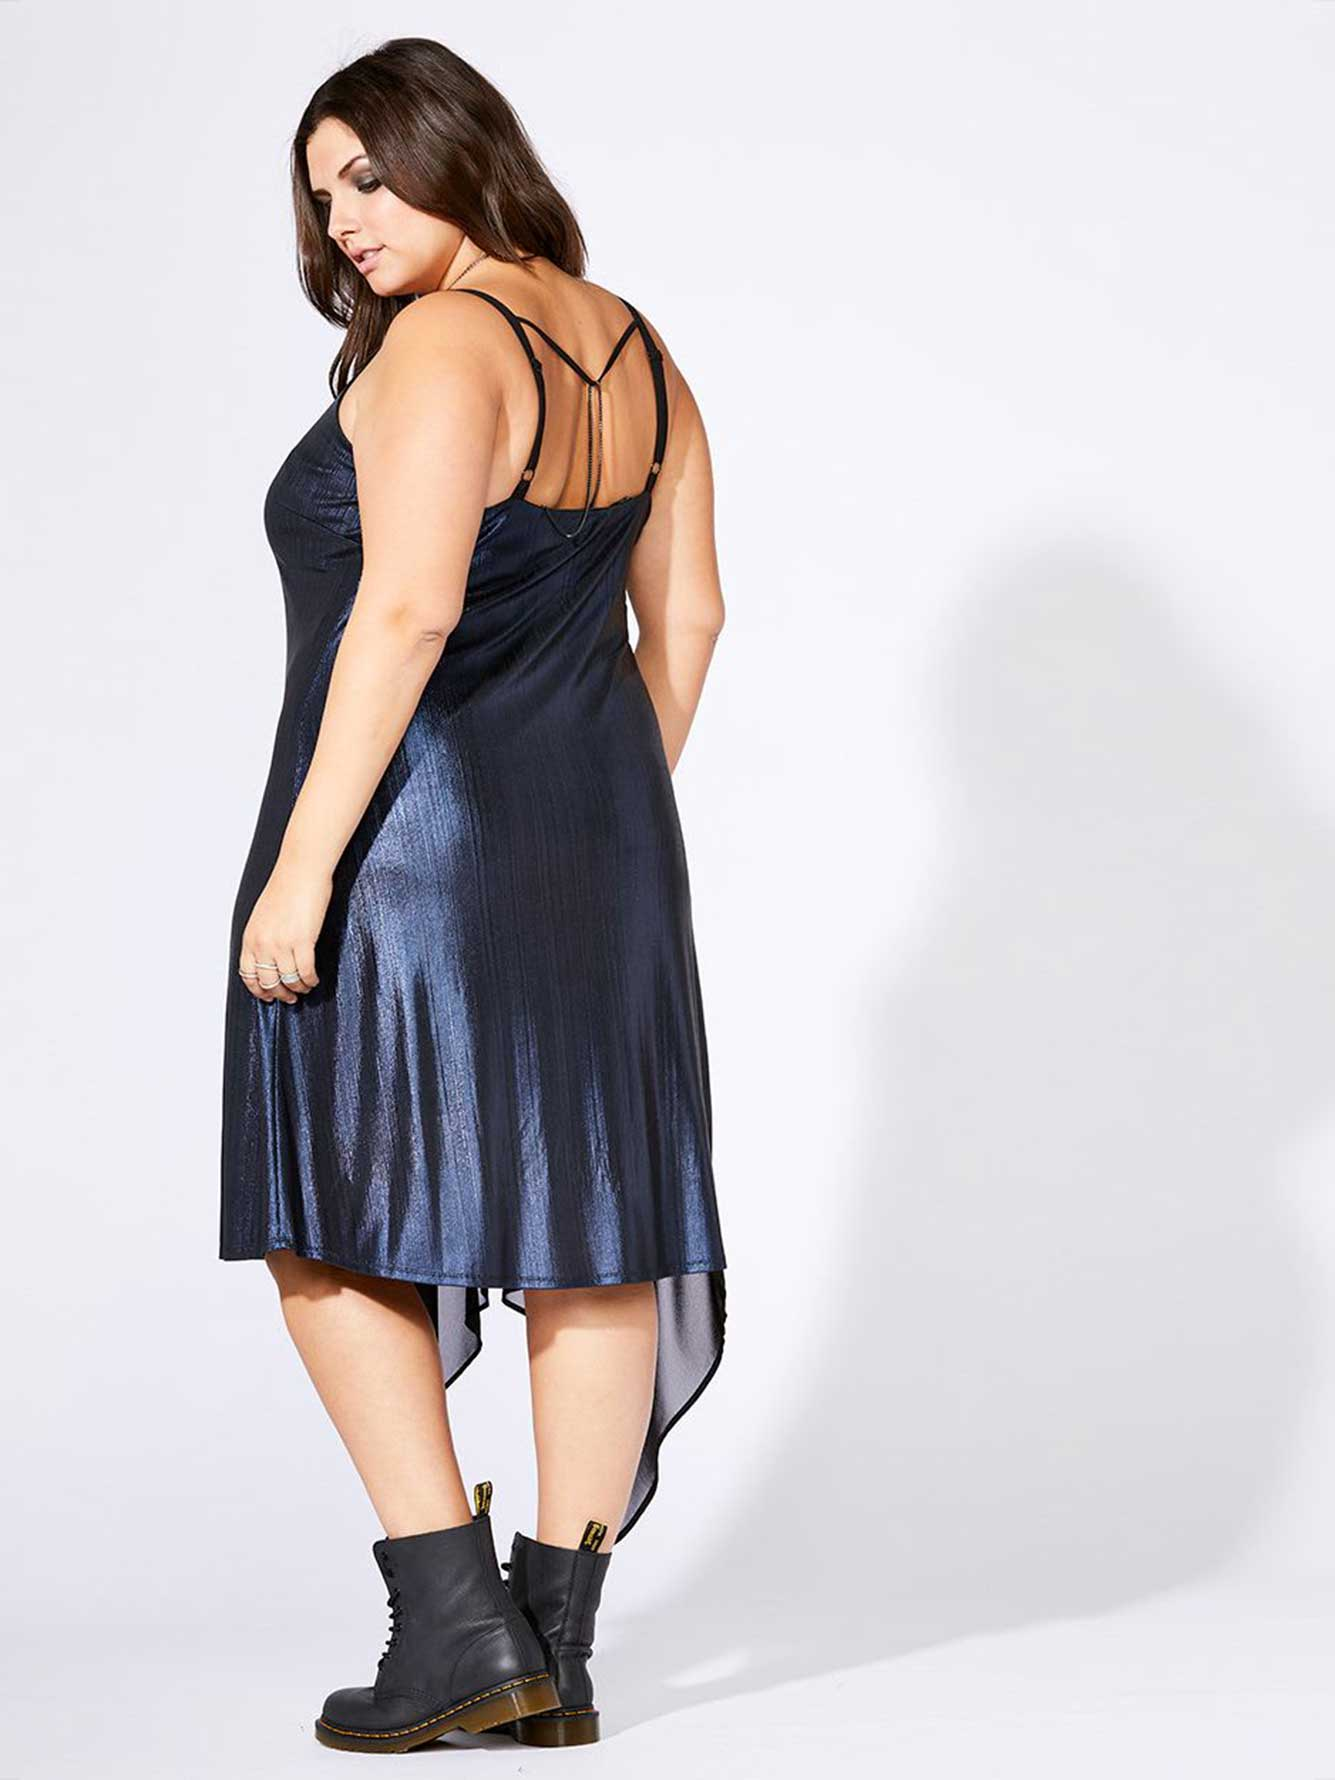 mblm - Asymmetric Dress with Chiffon